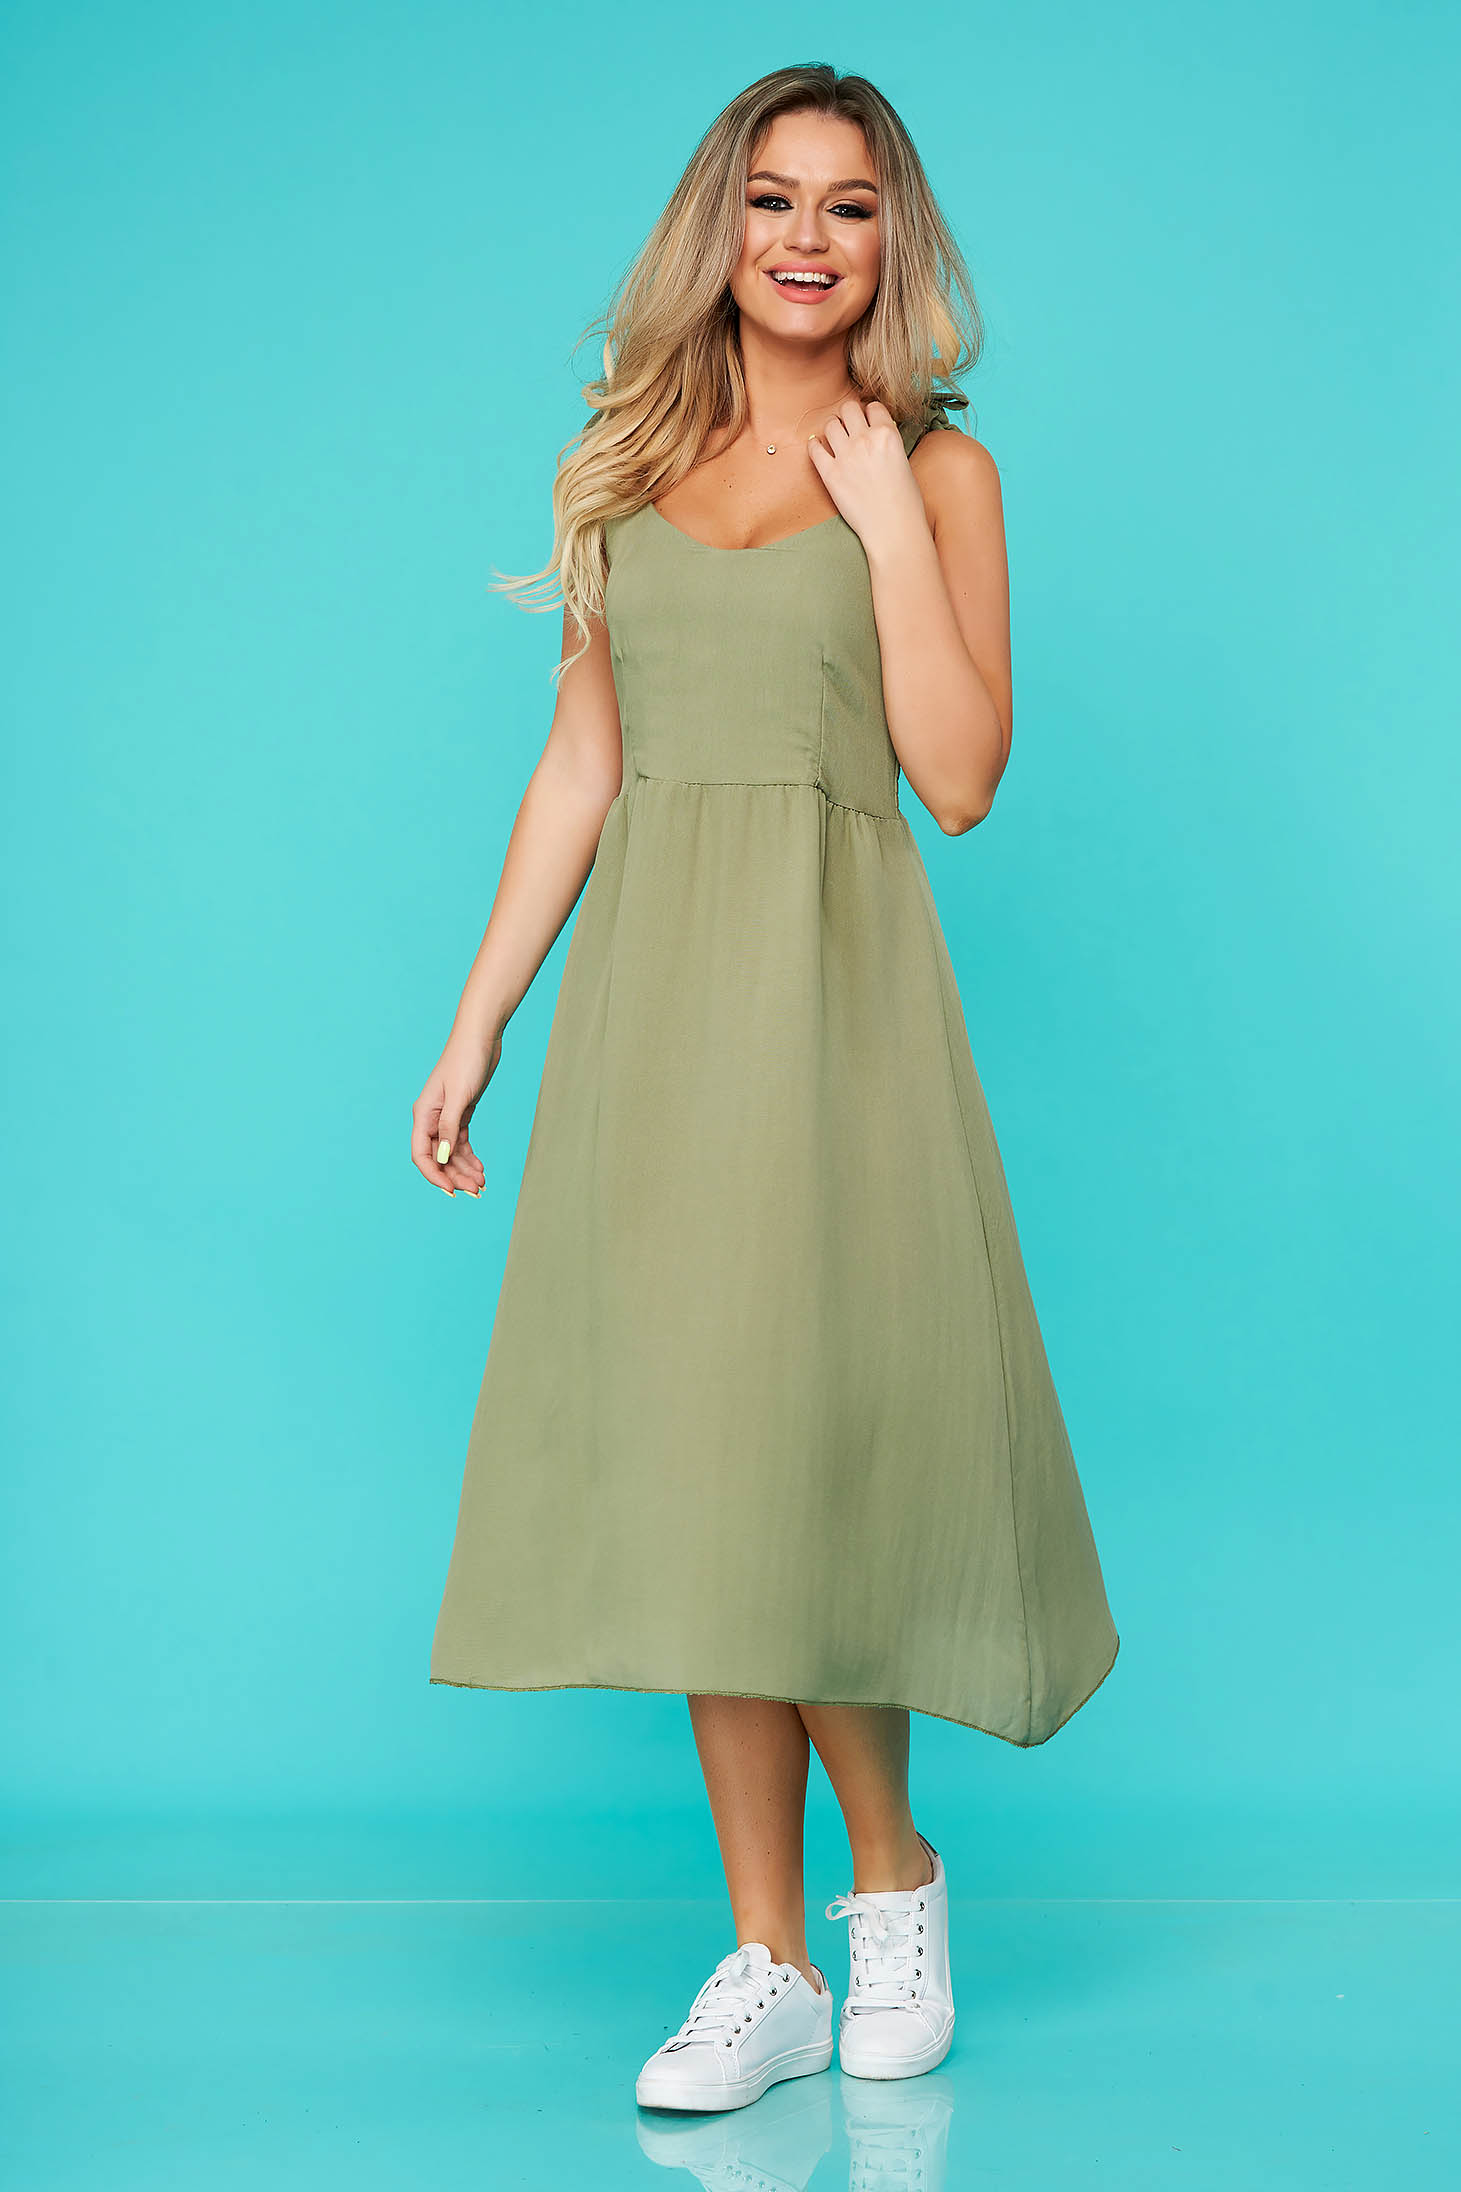 Green dress daily straight midi with rounded cleavage nonelastic cotton